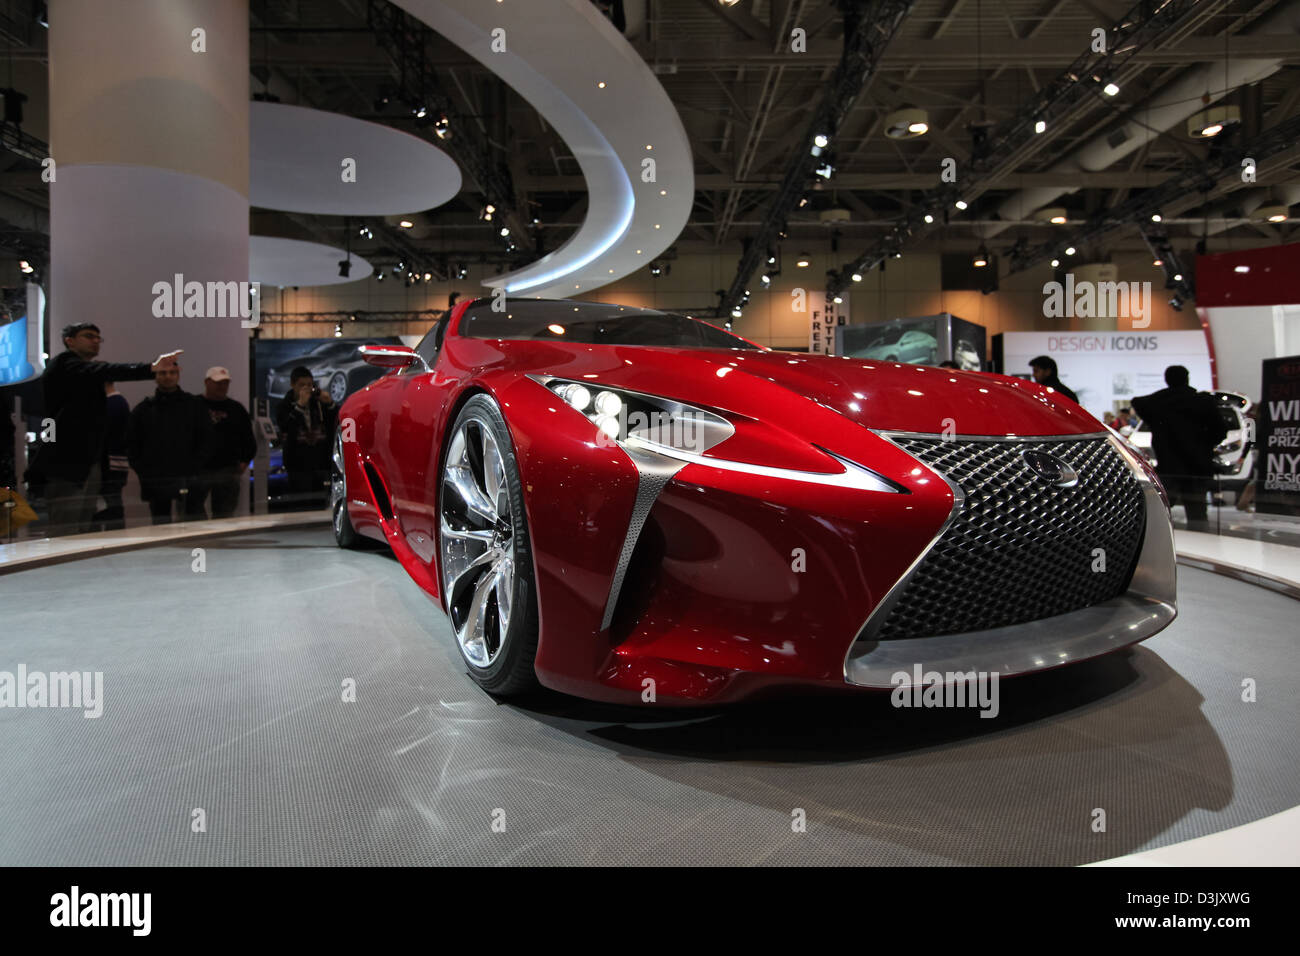 Car Front View Stock Photos Car Front View Stock Images Alamy